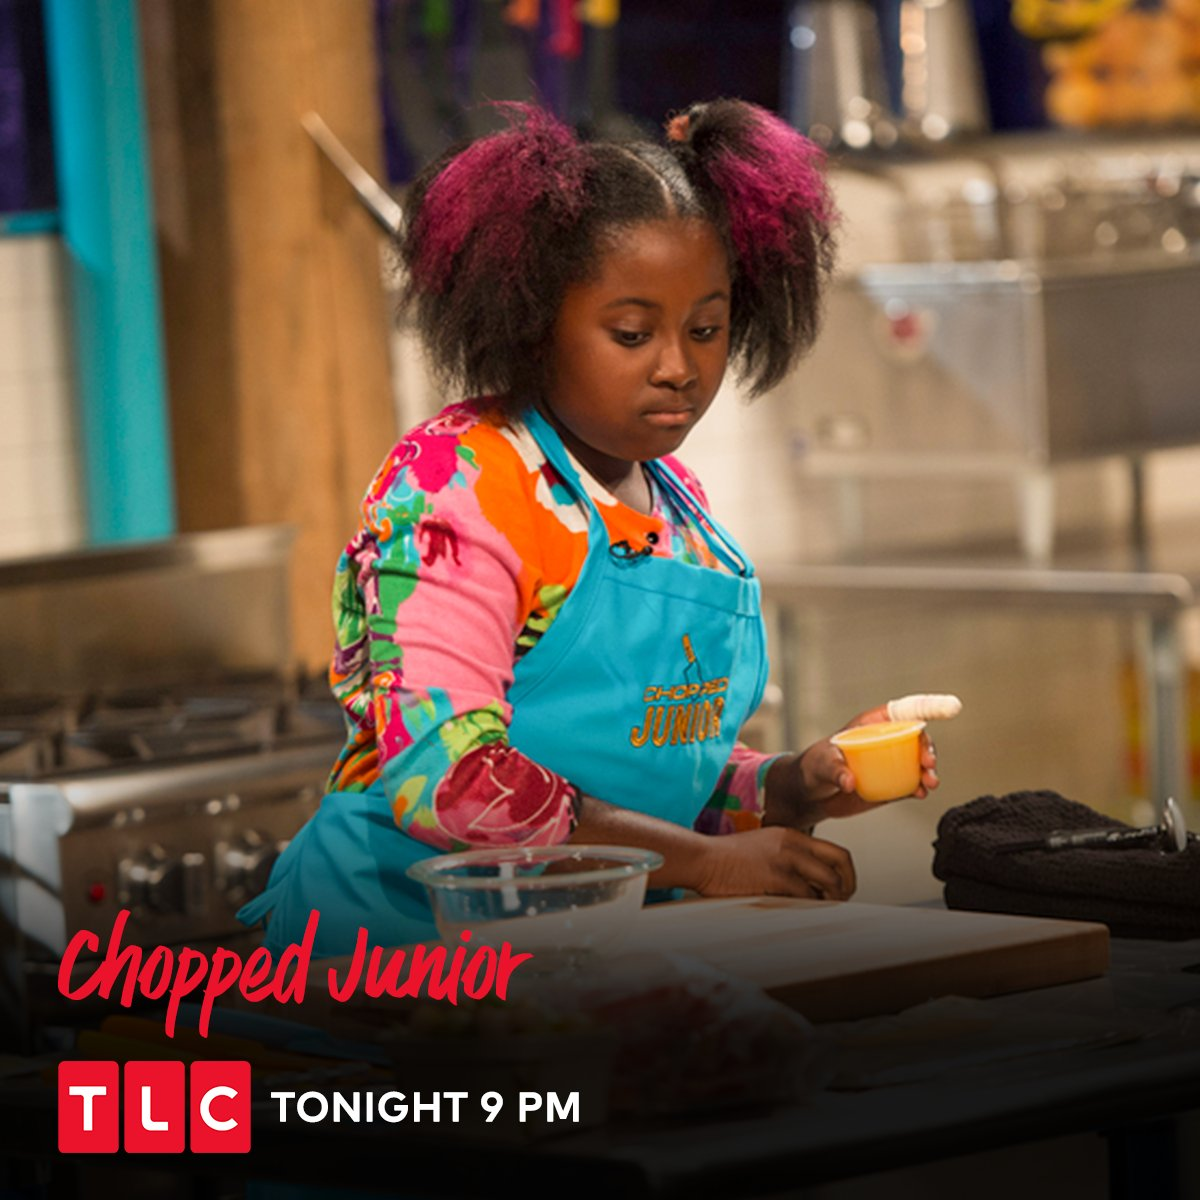 It's time to get grillin'! The young chefs are tasked to make the best dishes they possibly can using nothing but a grill. Don't miss #ChoppedJunior, tonight at 9 PM, only on TLC.   #TLC #TLCIndia #food #foodlove #chefs #kids #kidchefs #foodies<br>http://pic.twitter.com/Q0KSqSEWdM